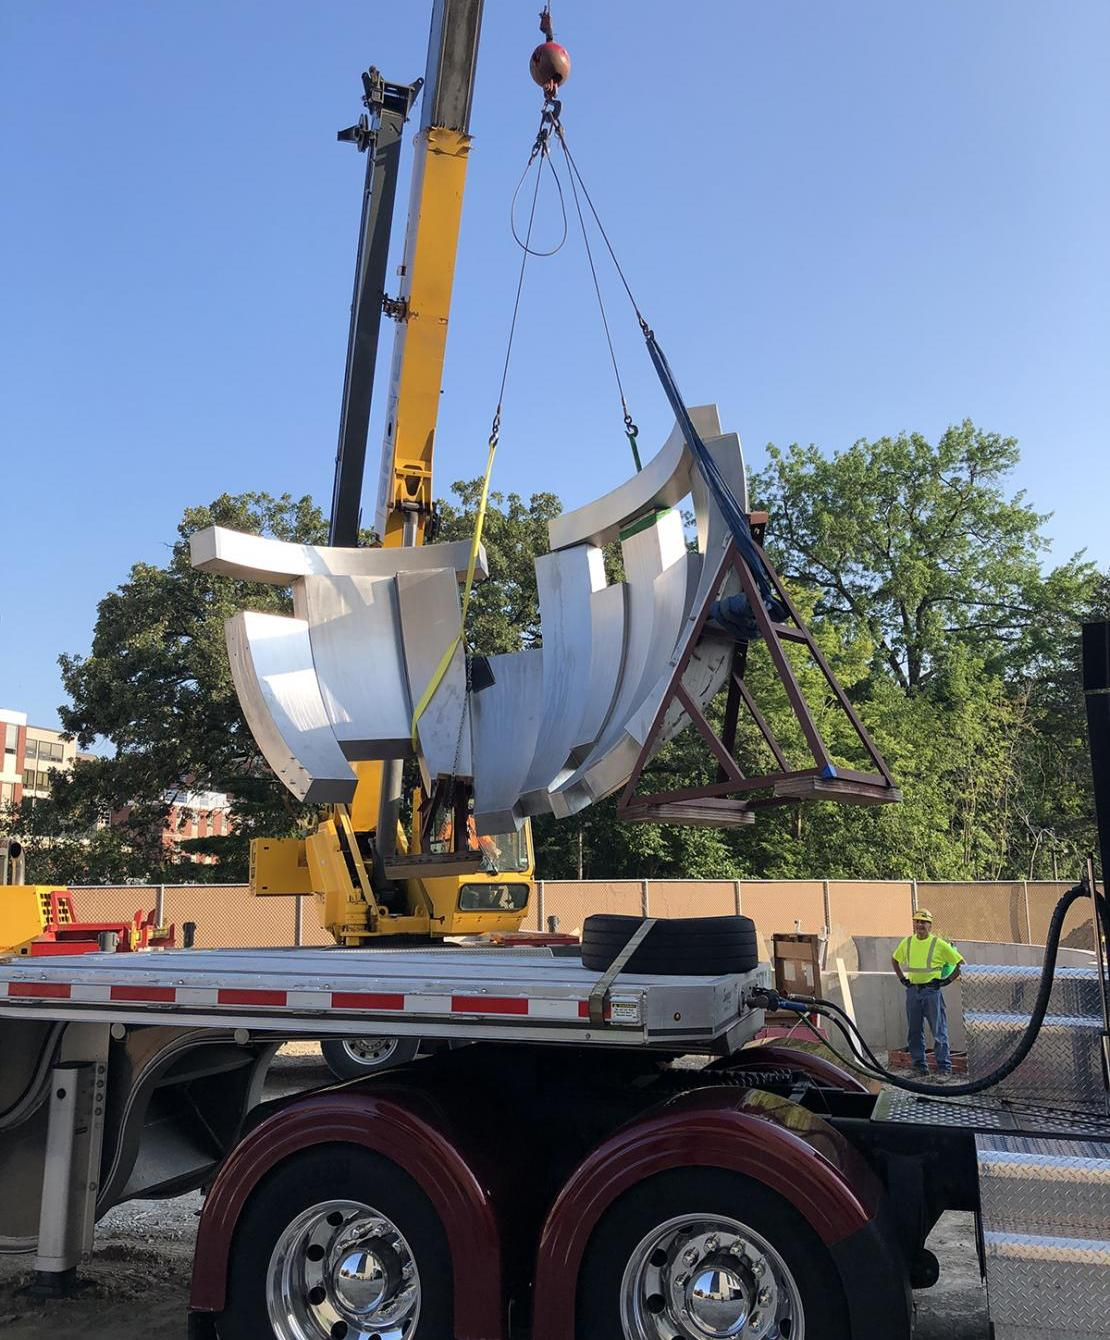 A sculpture built in the University of Northern Iowa's Public Art Incubator arrives at Iowa City.